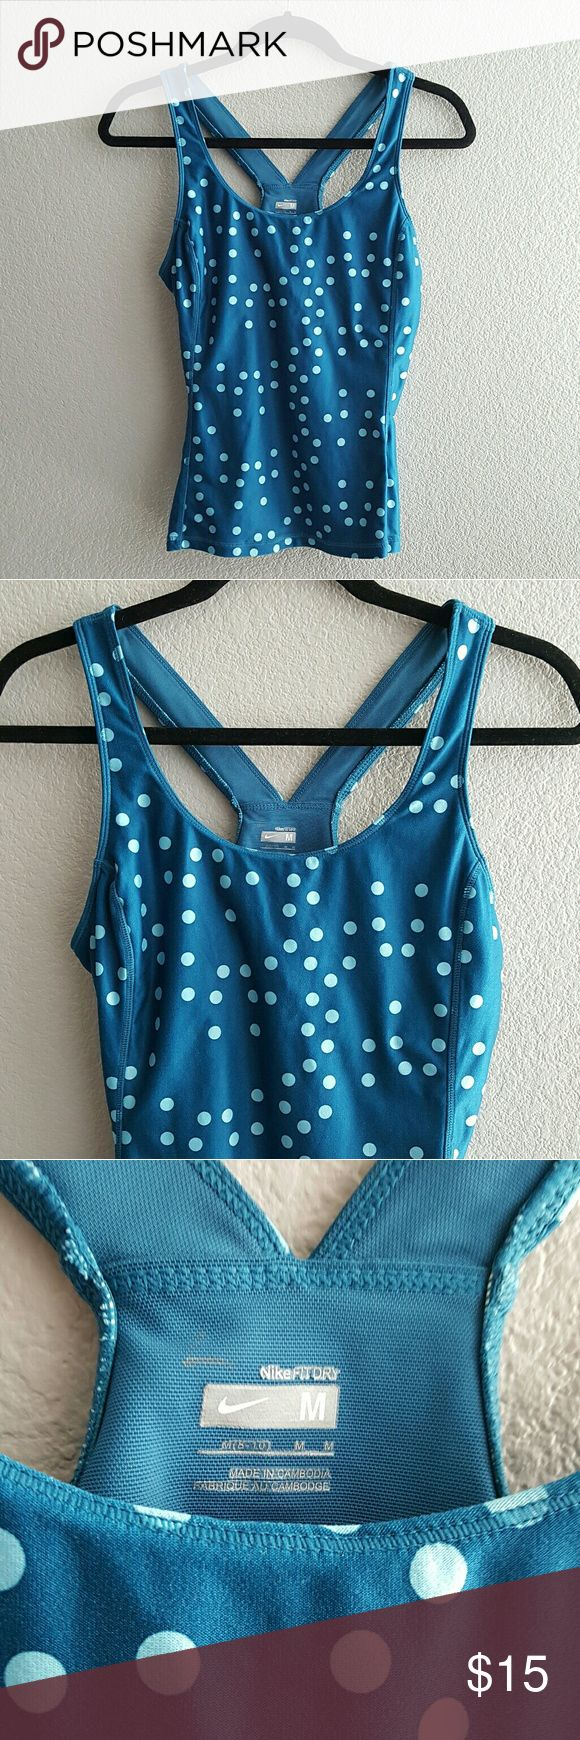 Nike Polka Dot Exercise Tank Super cute blue racerback tank with lighter blue polka dots from Nike Fit Dry, size medium. Tank does include built-in bra. In overall really good used condition with no stains or holes.  Comes from a smoke free home! I always ship same or next day :) Nike Tops Tank Tops